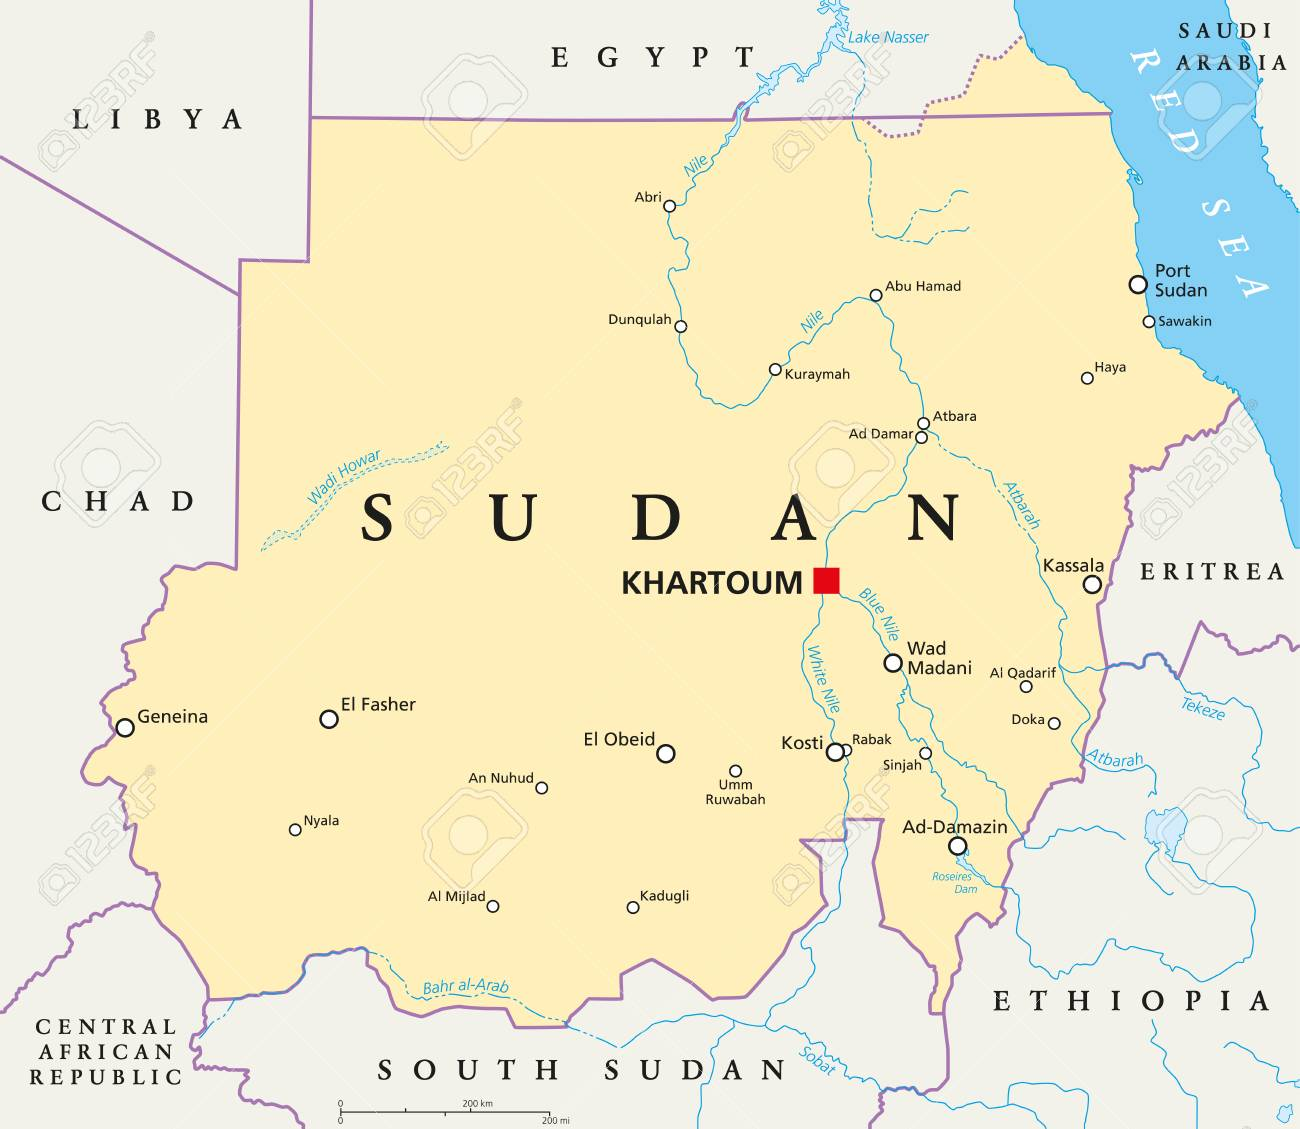 Political Map Of Sudan.Sudan Political Map With Capital Khartoum National Borders